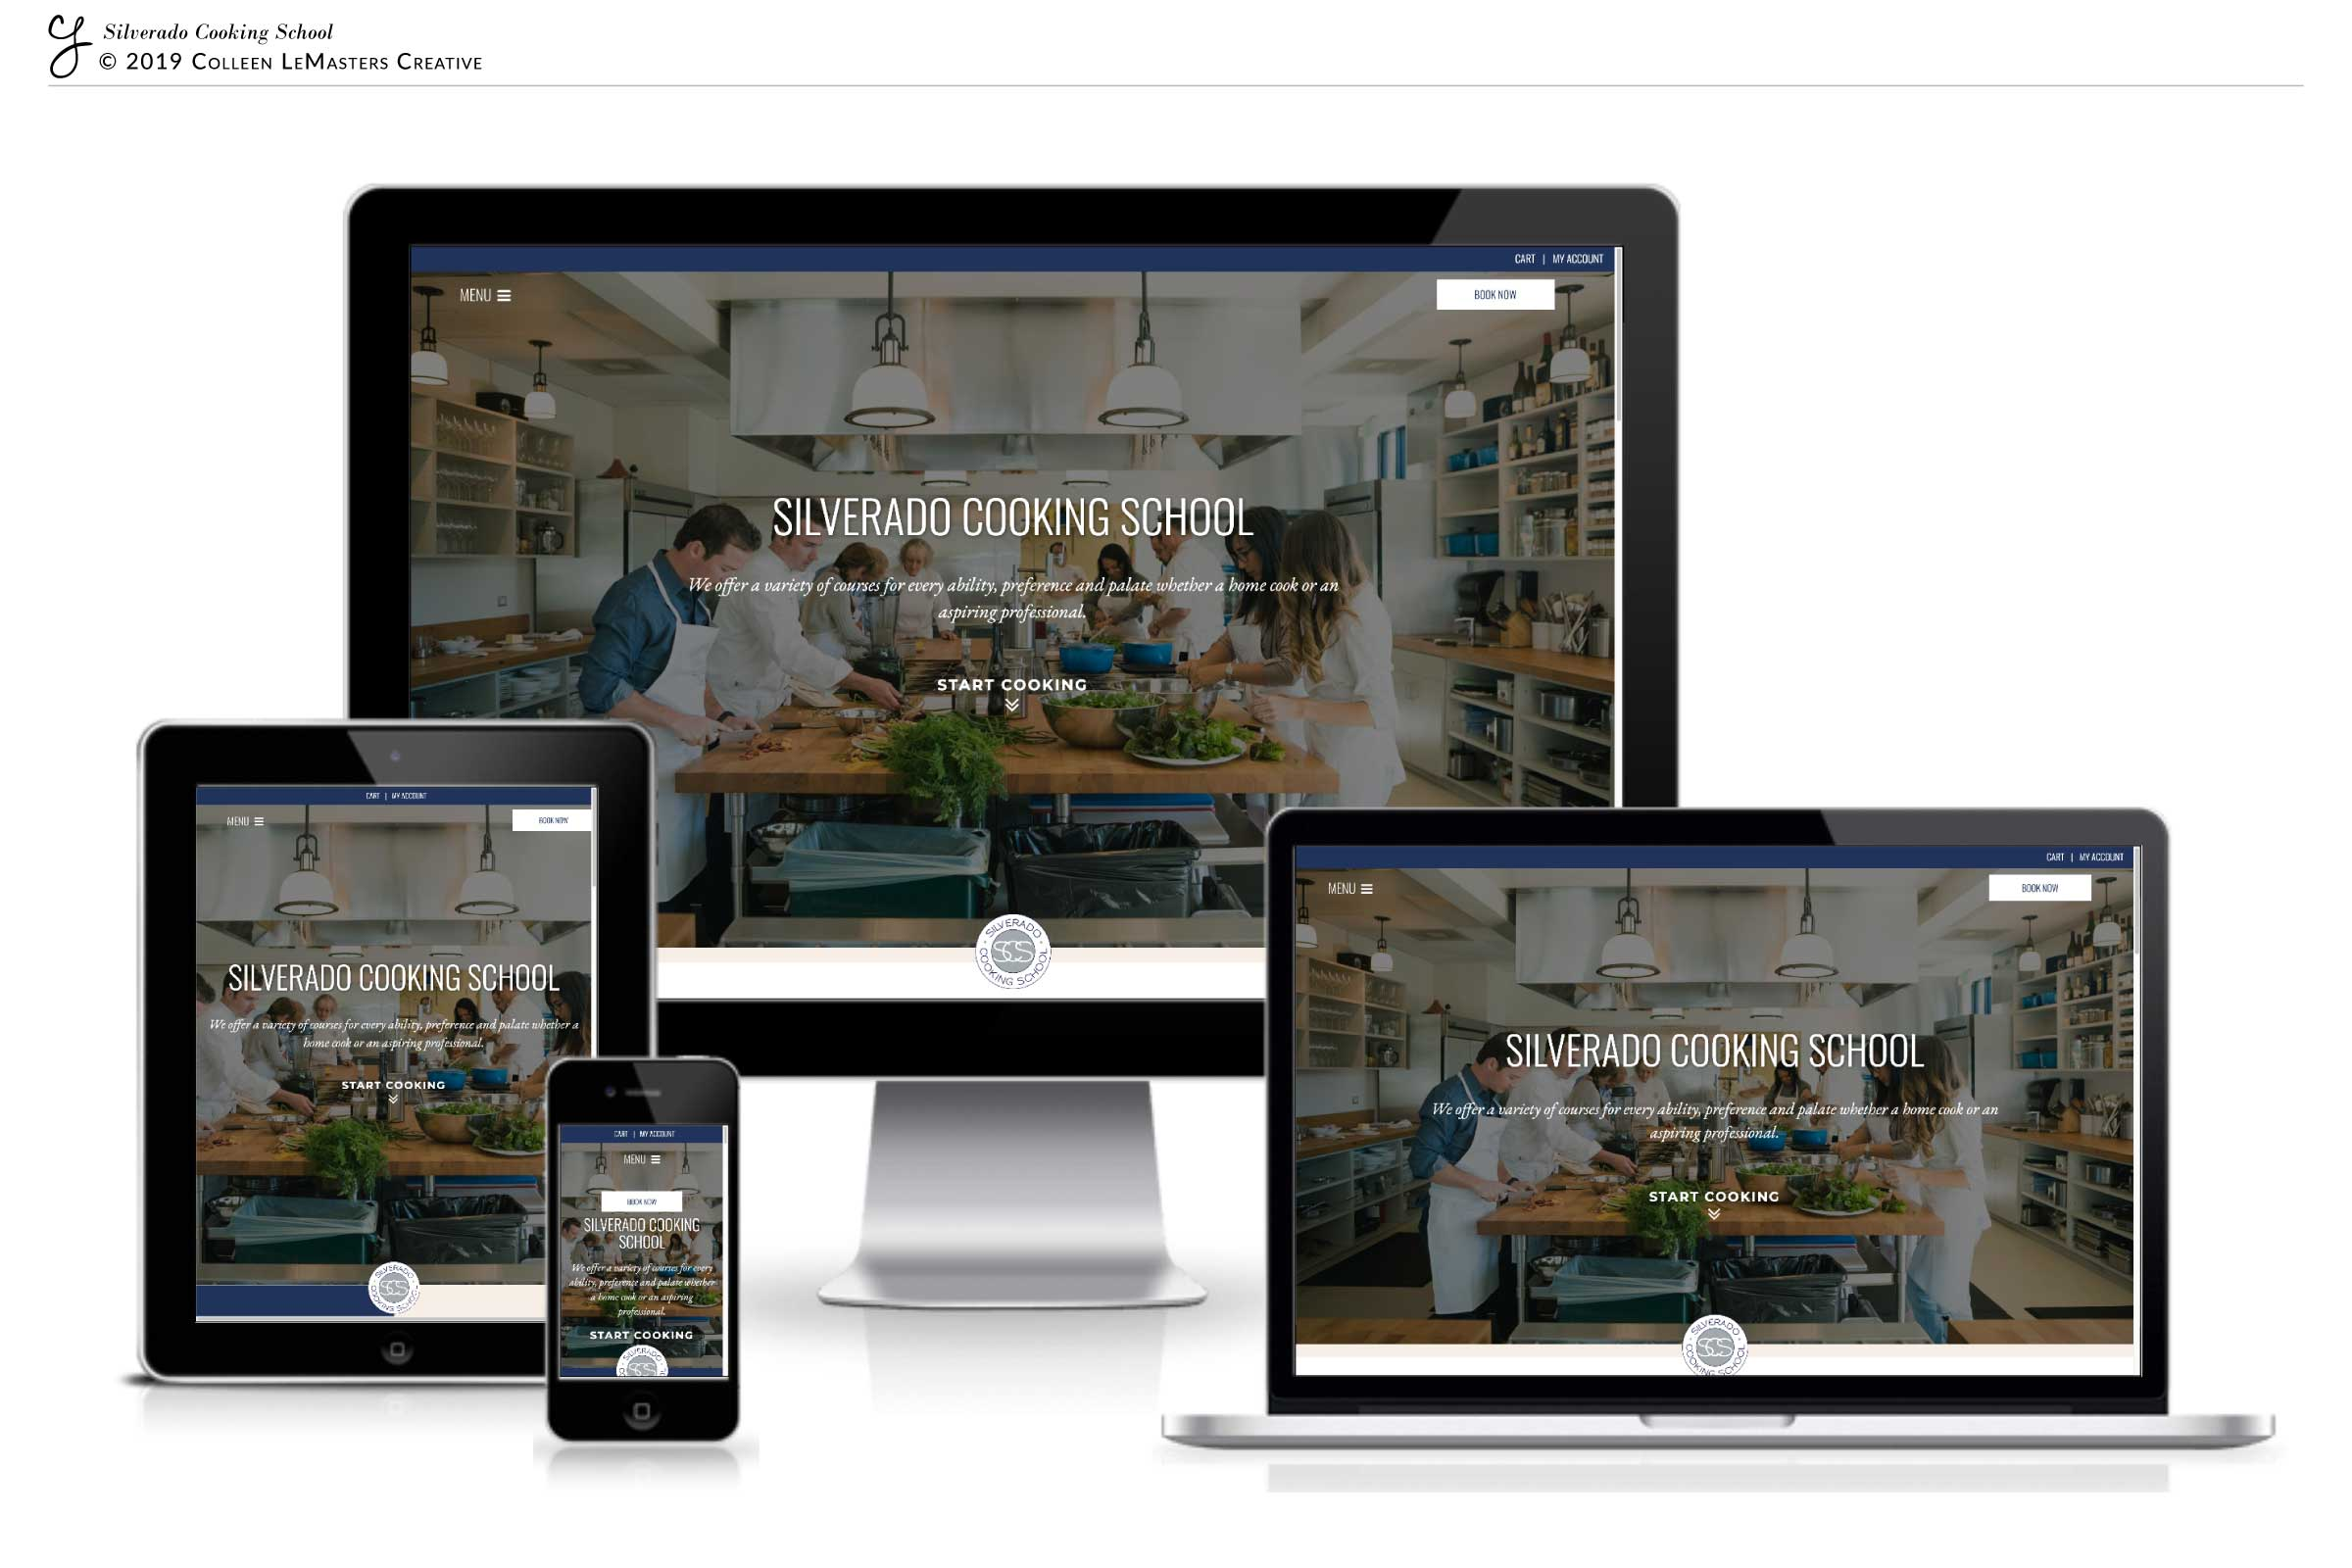 silverado-cooking-school_clcreative-site website